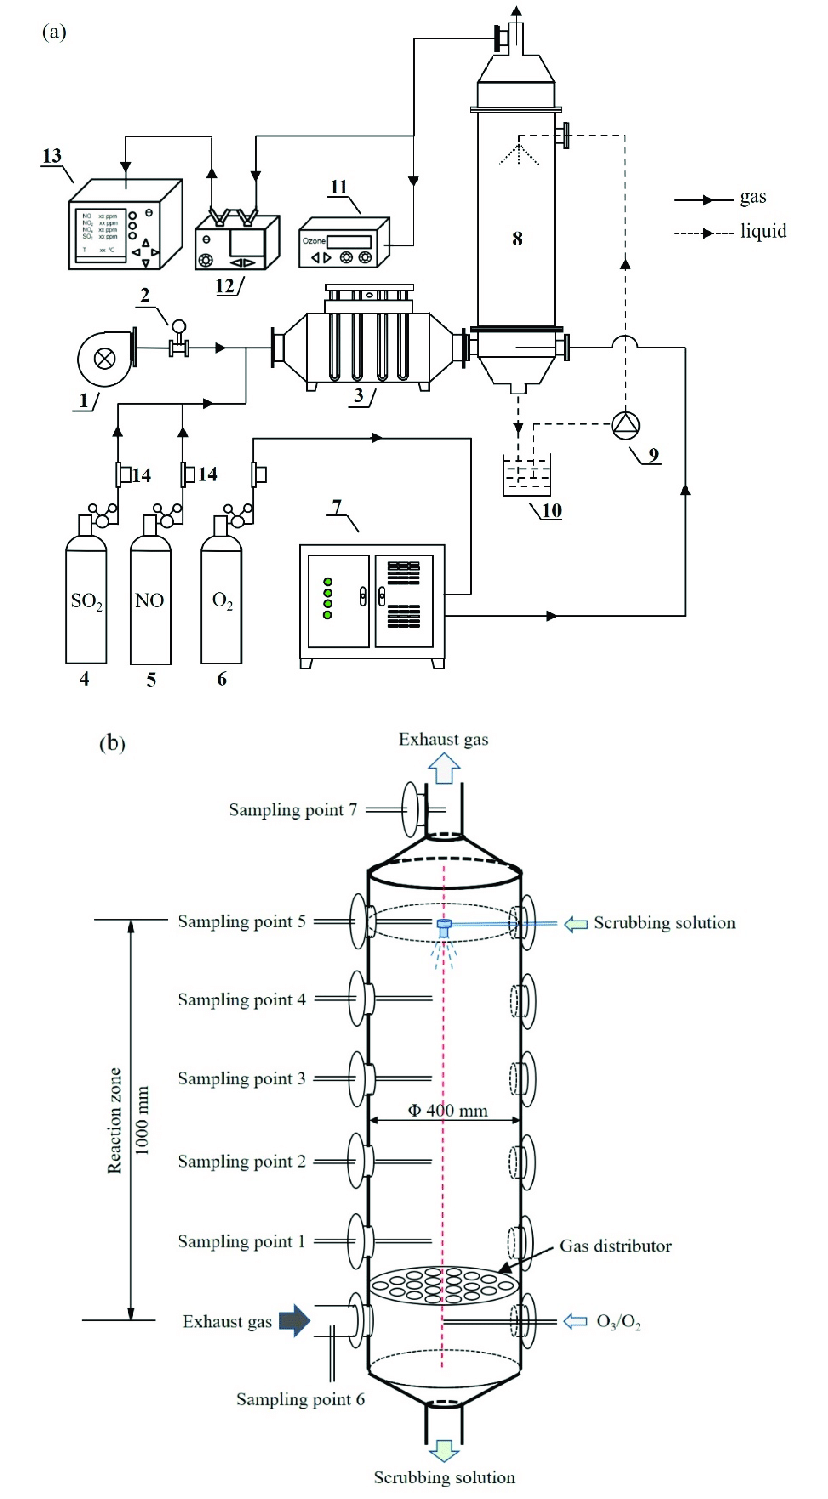 (a) Schematic diagram of our experimental setup: 1